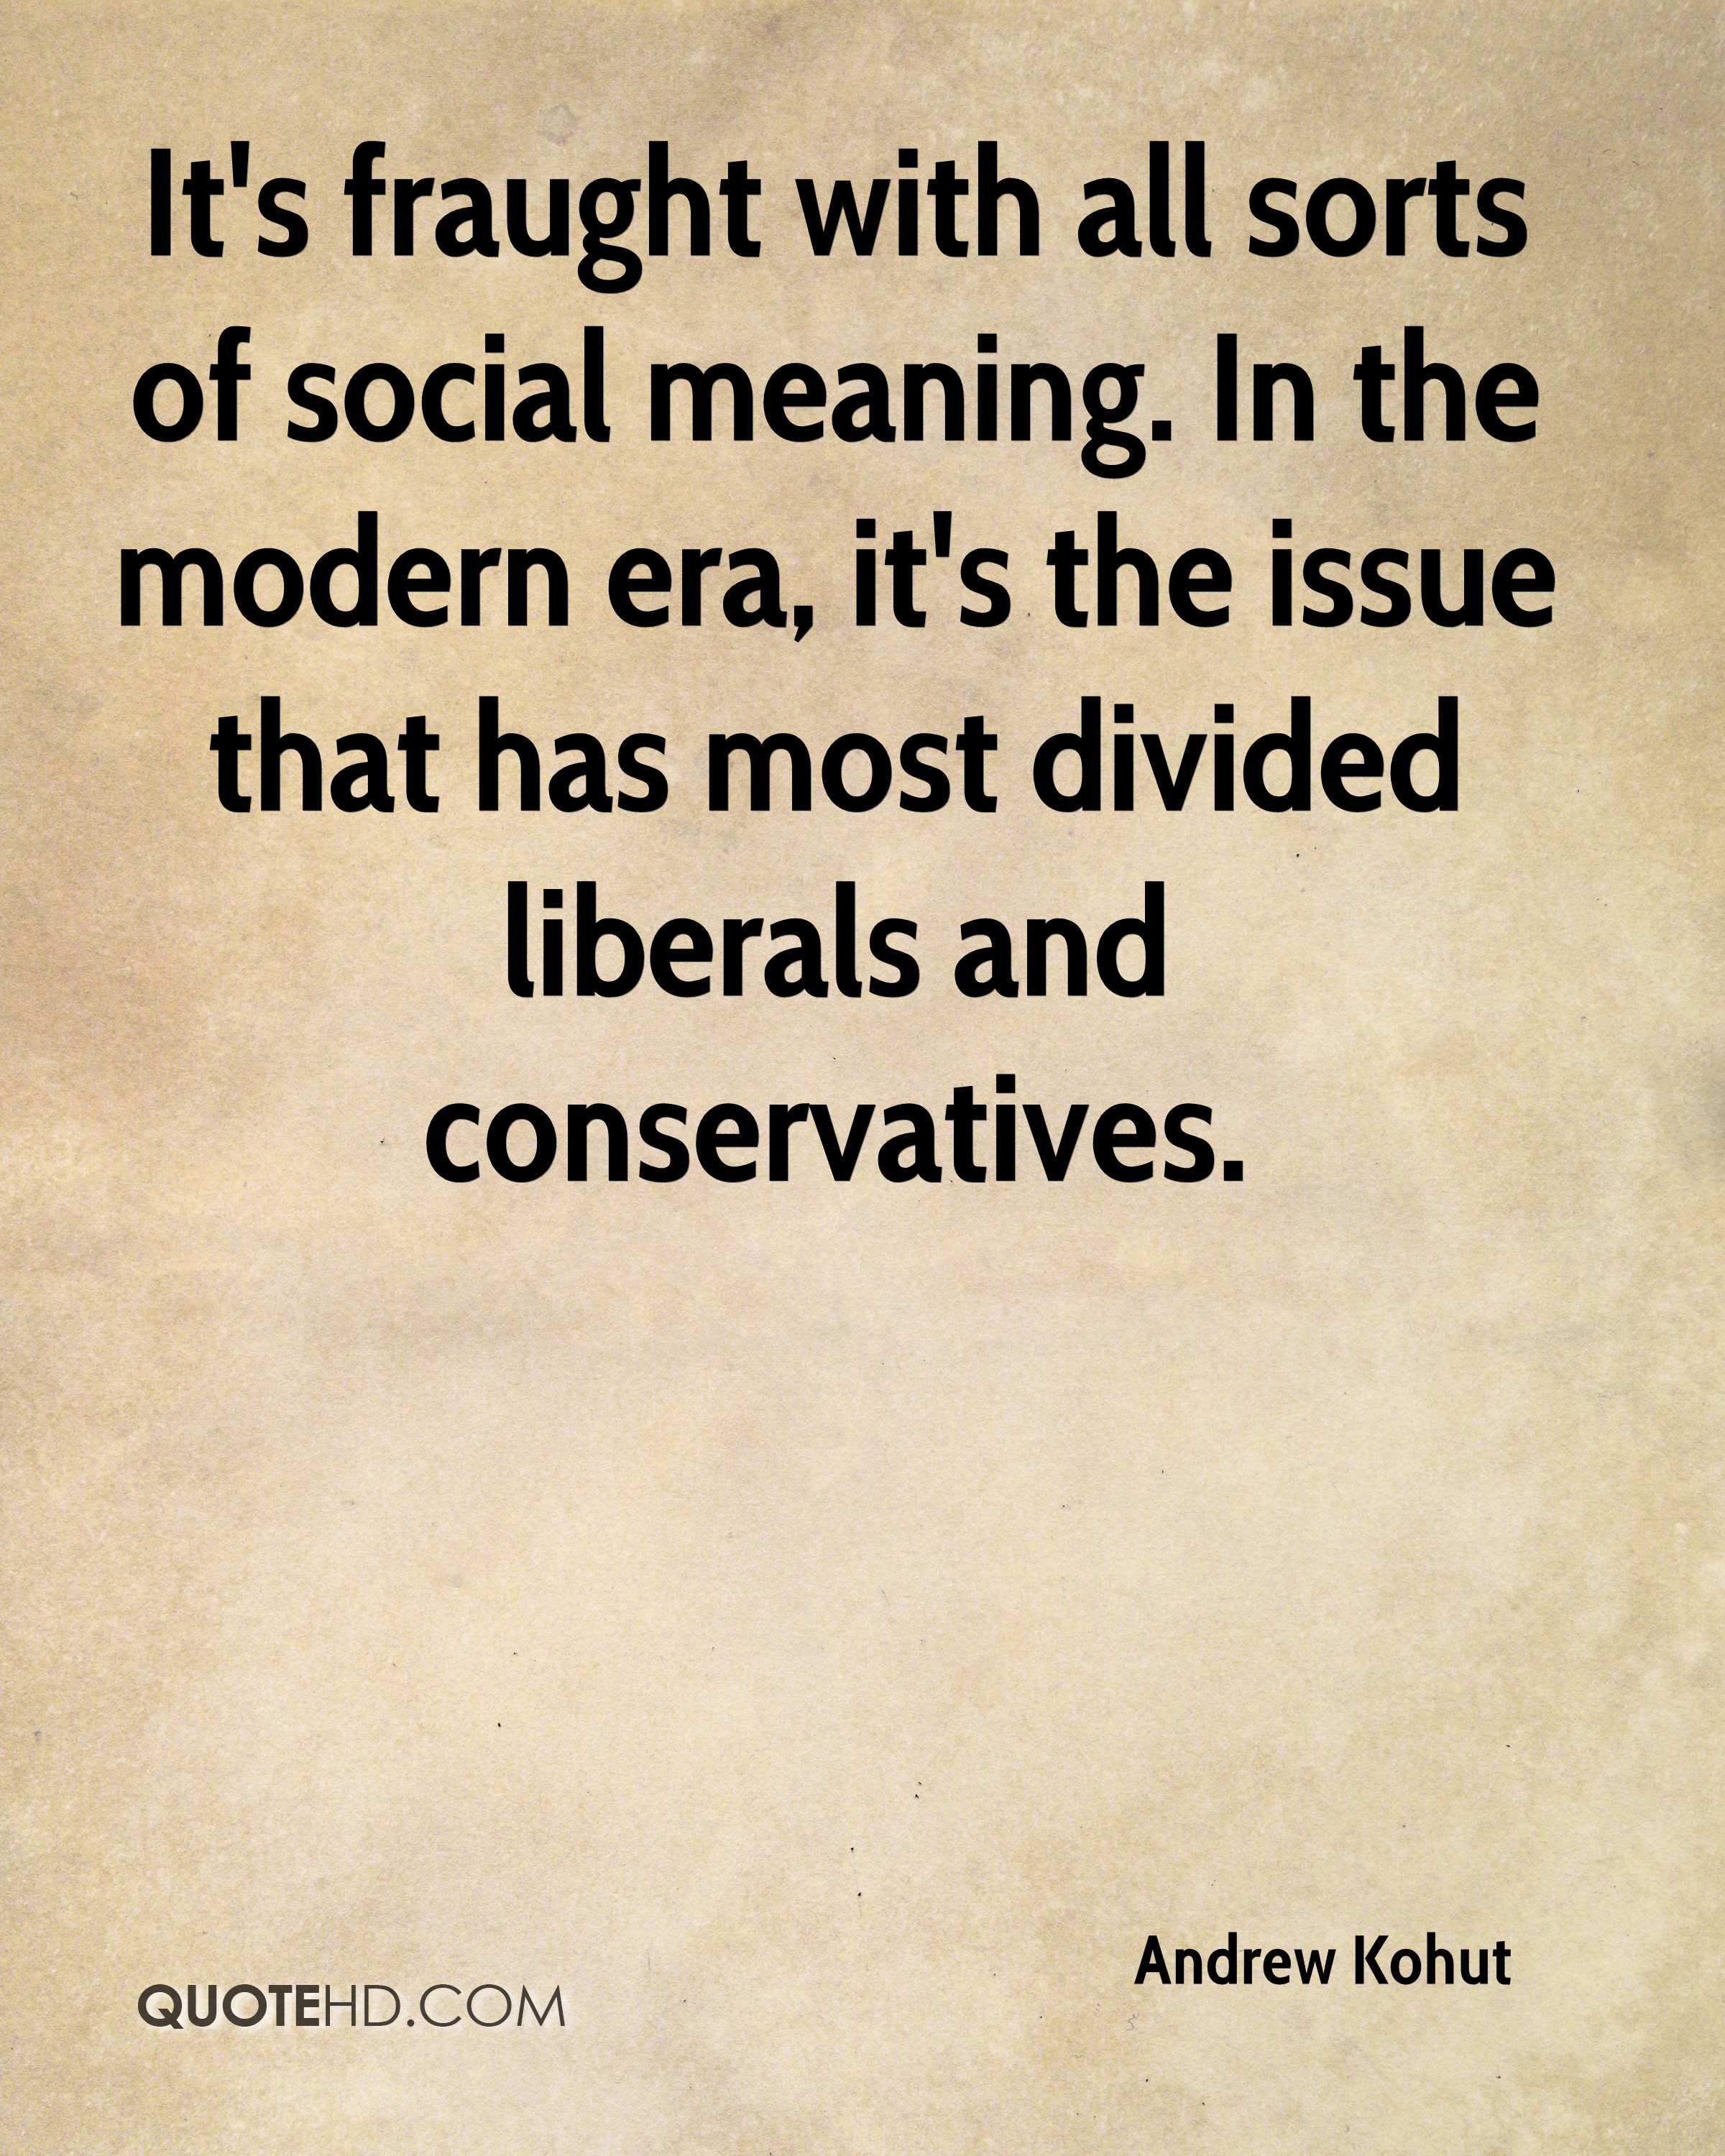 It's fraught with all sorts of social meaning. In the modern era, it's the issue that has most divided liberals and conservatives.